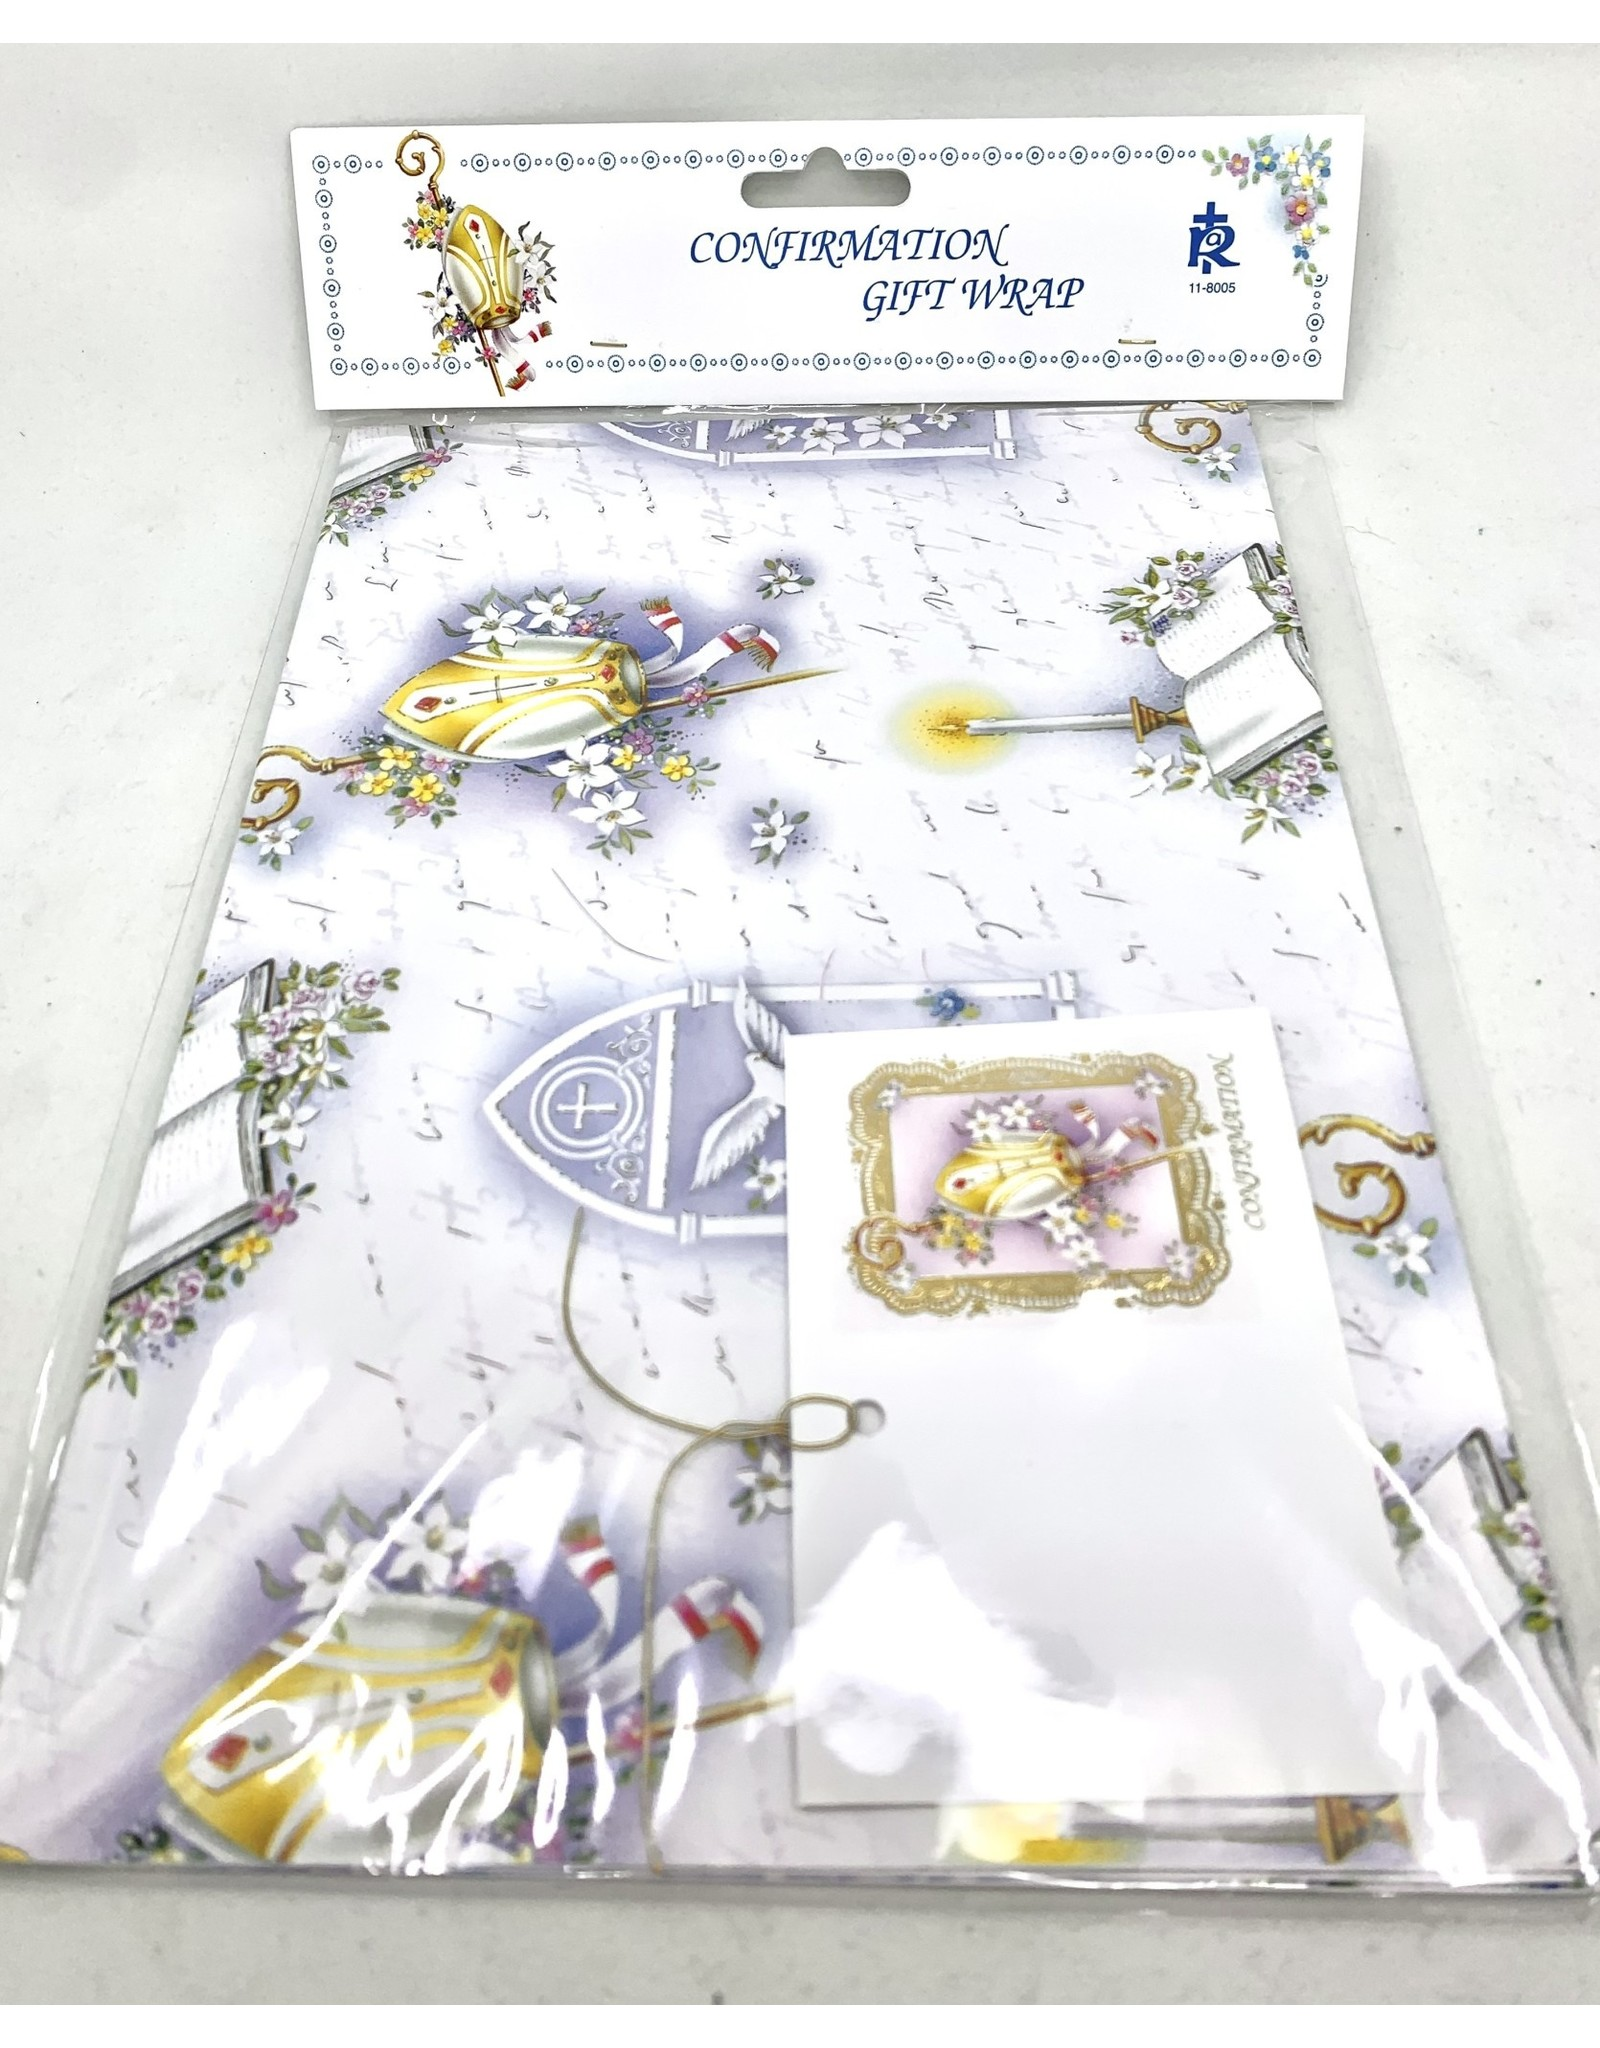 Confirmation Gift Wrap with Gift Tag